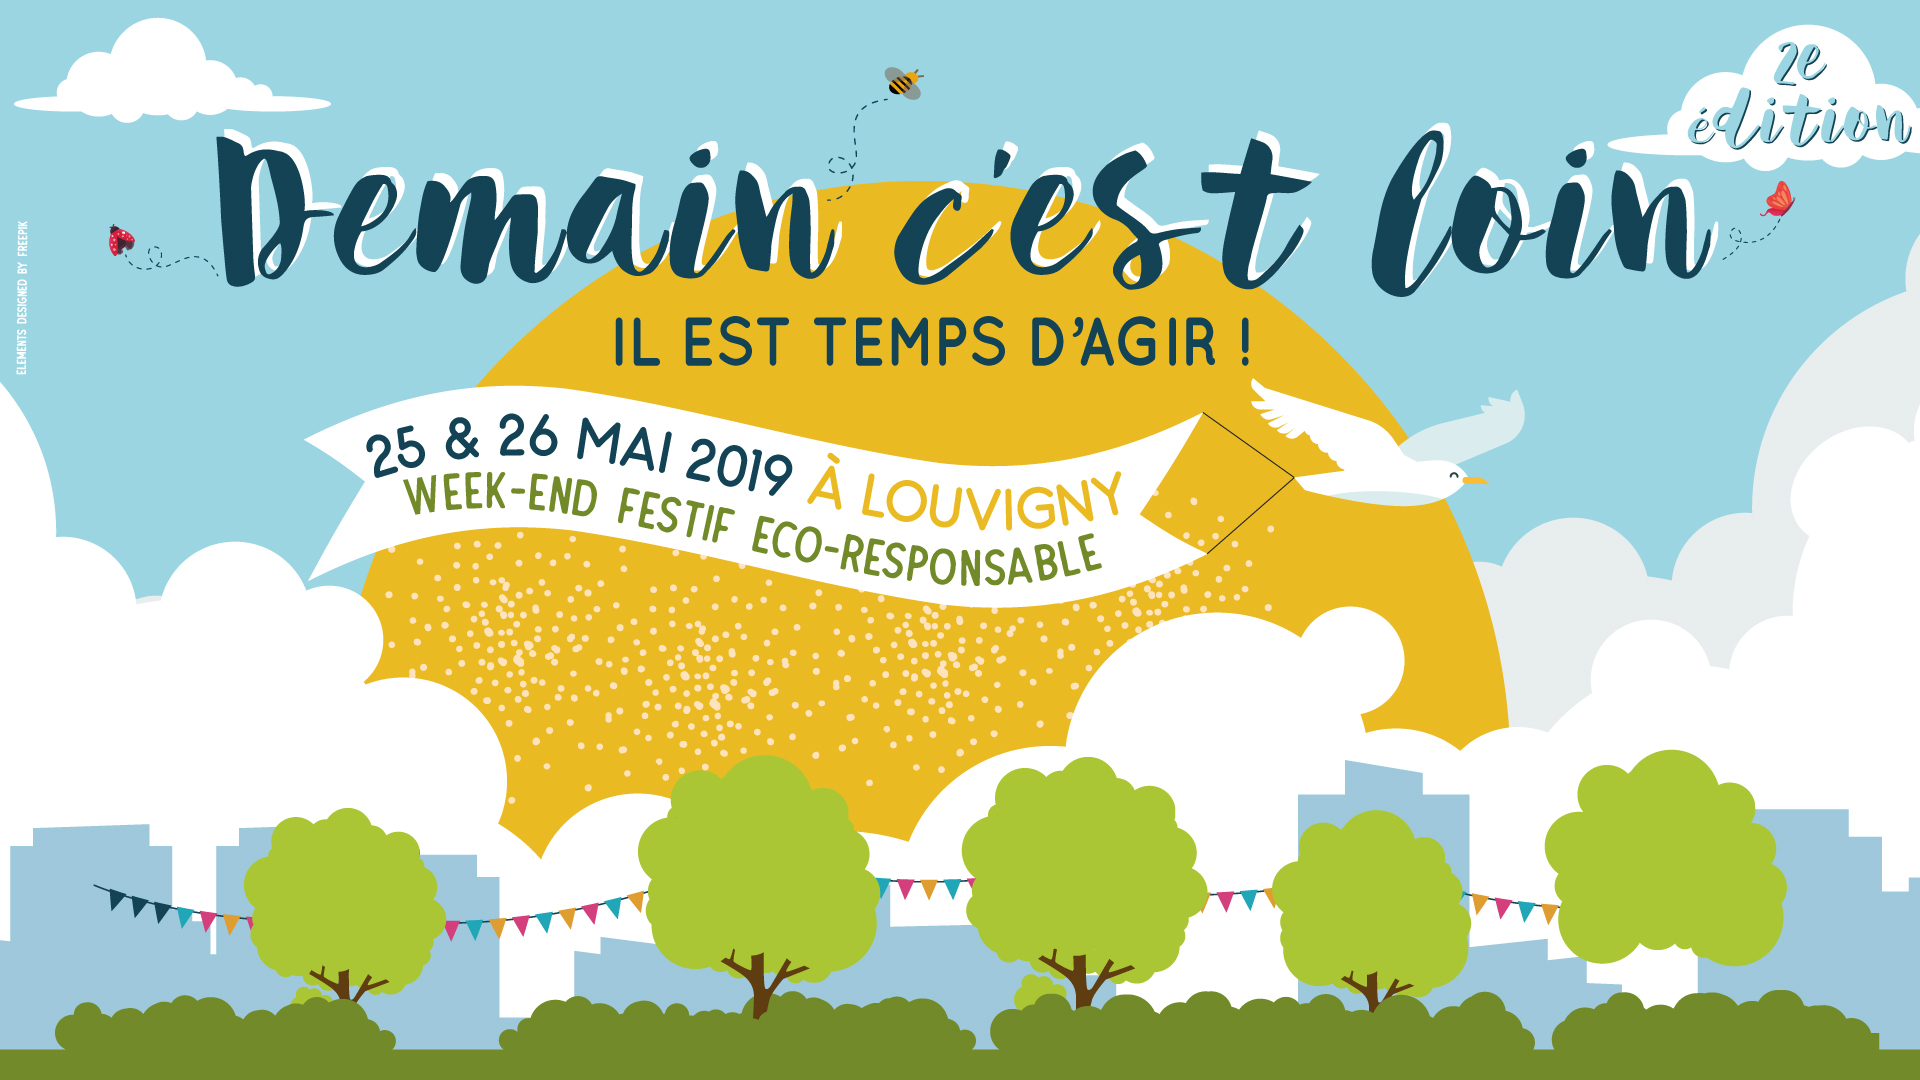 Week-end festif eco-responsable